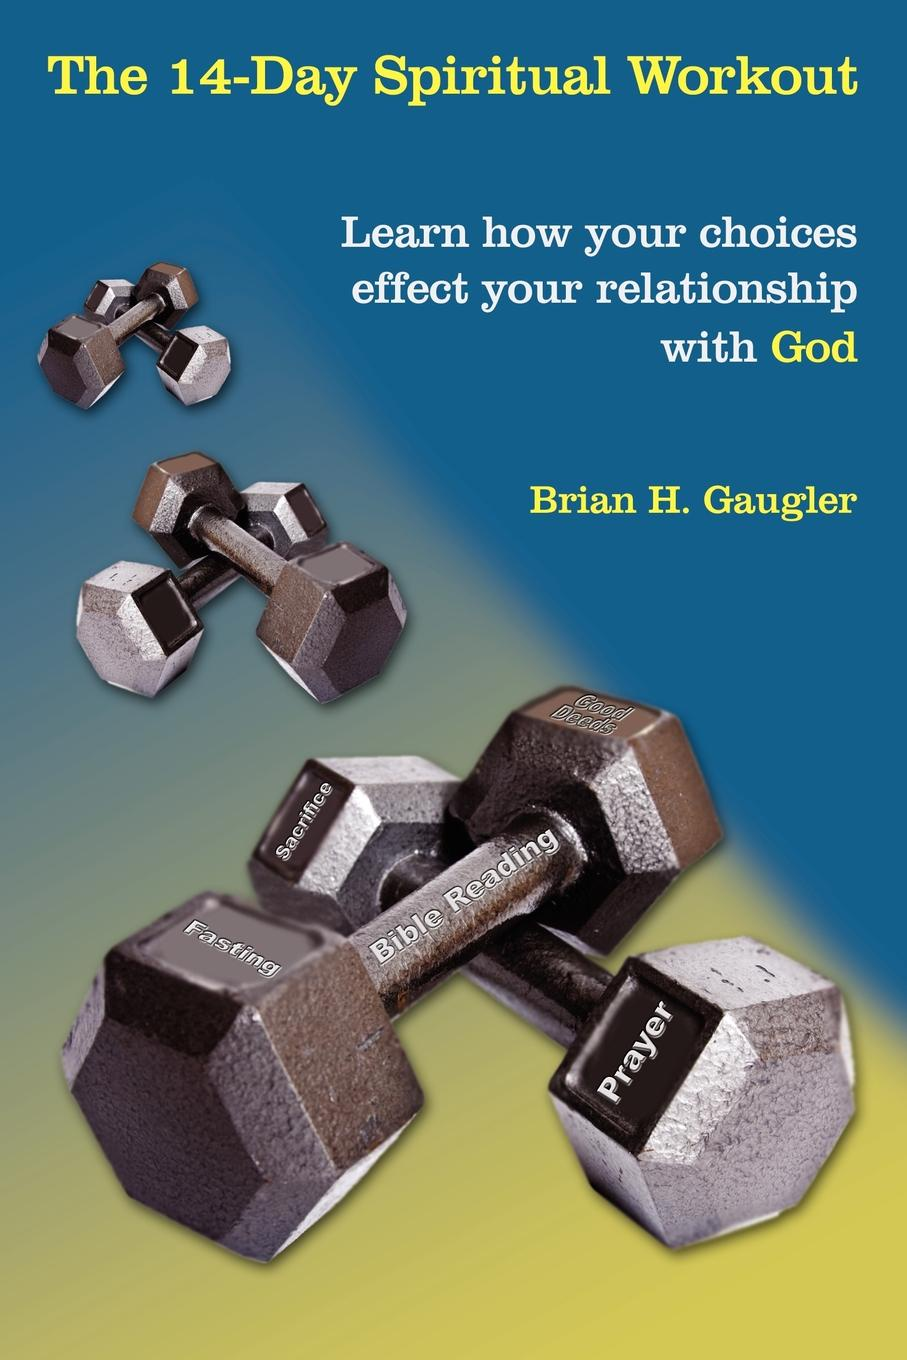 Brian H. Gaugler The 14-Day Spiritual Workout. Learn how your choices effect your relationship with God bakunin mikhail aleksandrovich god and the state